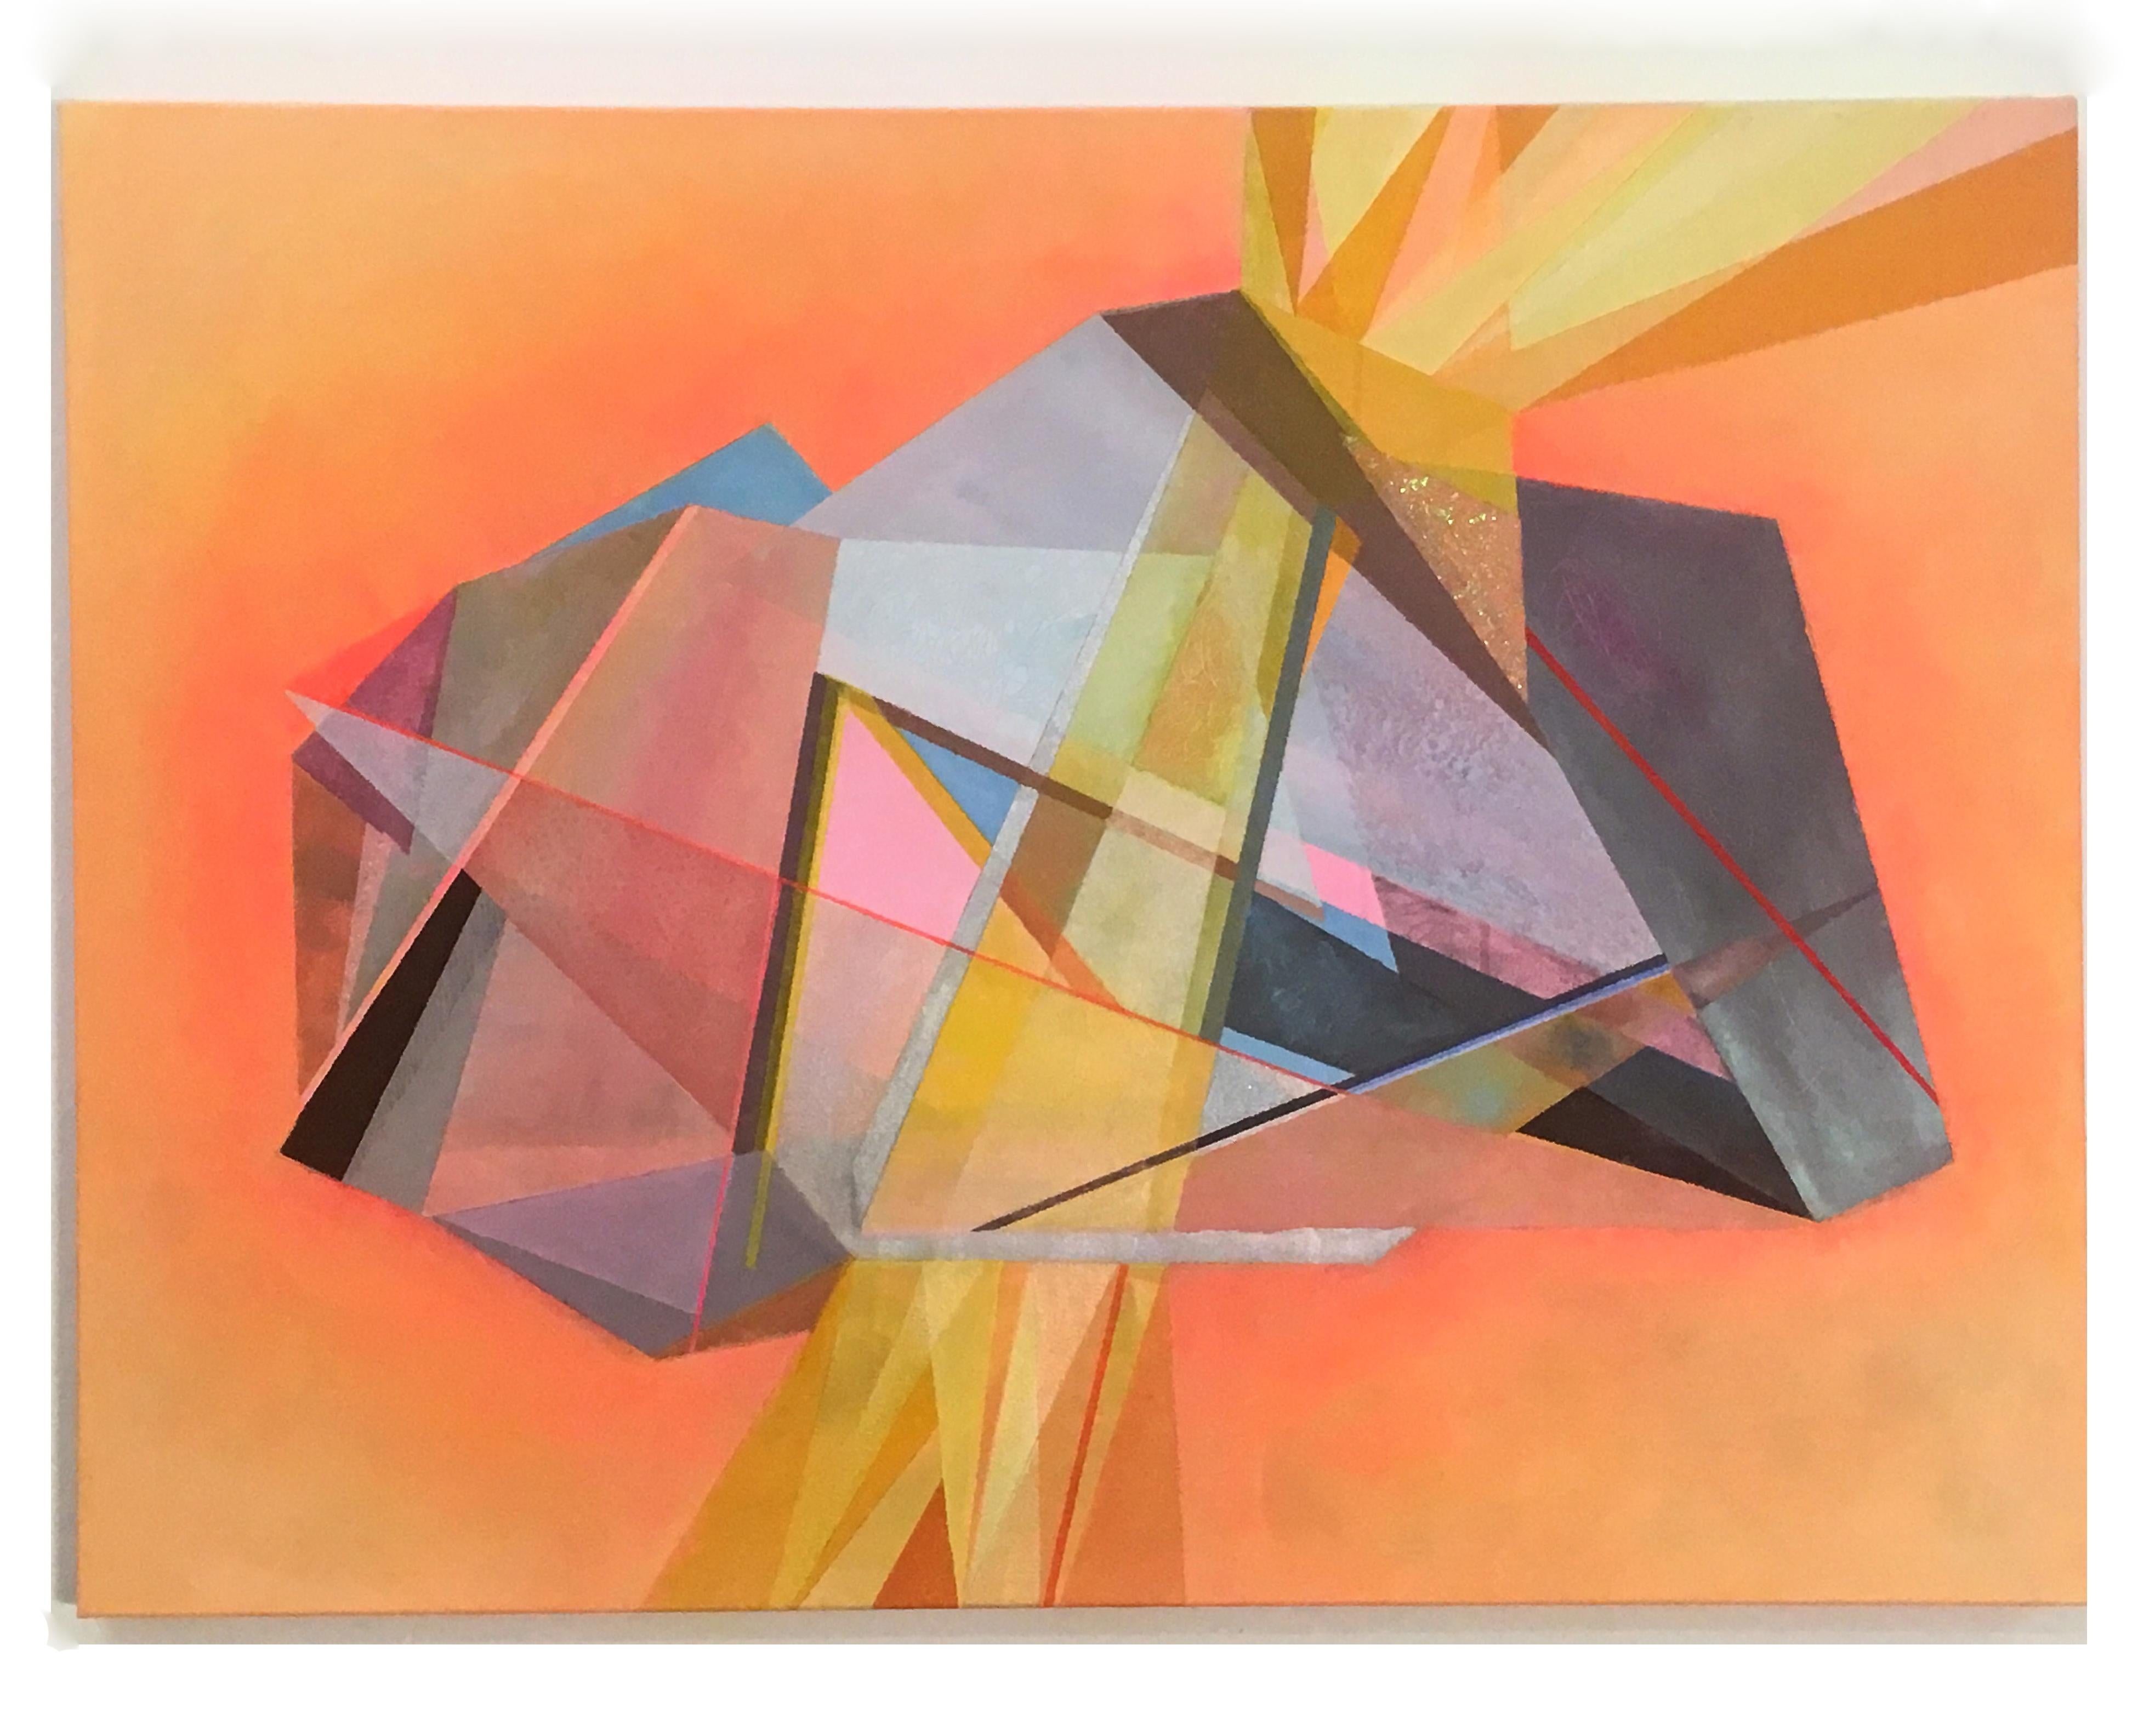 Peace and Power, abstract gemstone crystal, oil painting, yellow, peach, pink